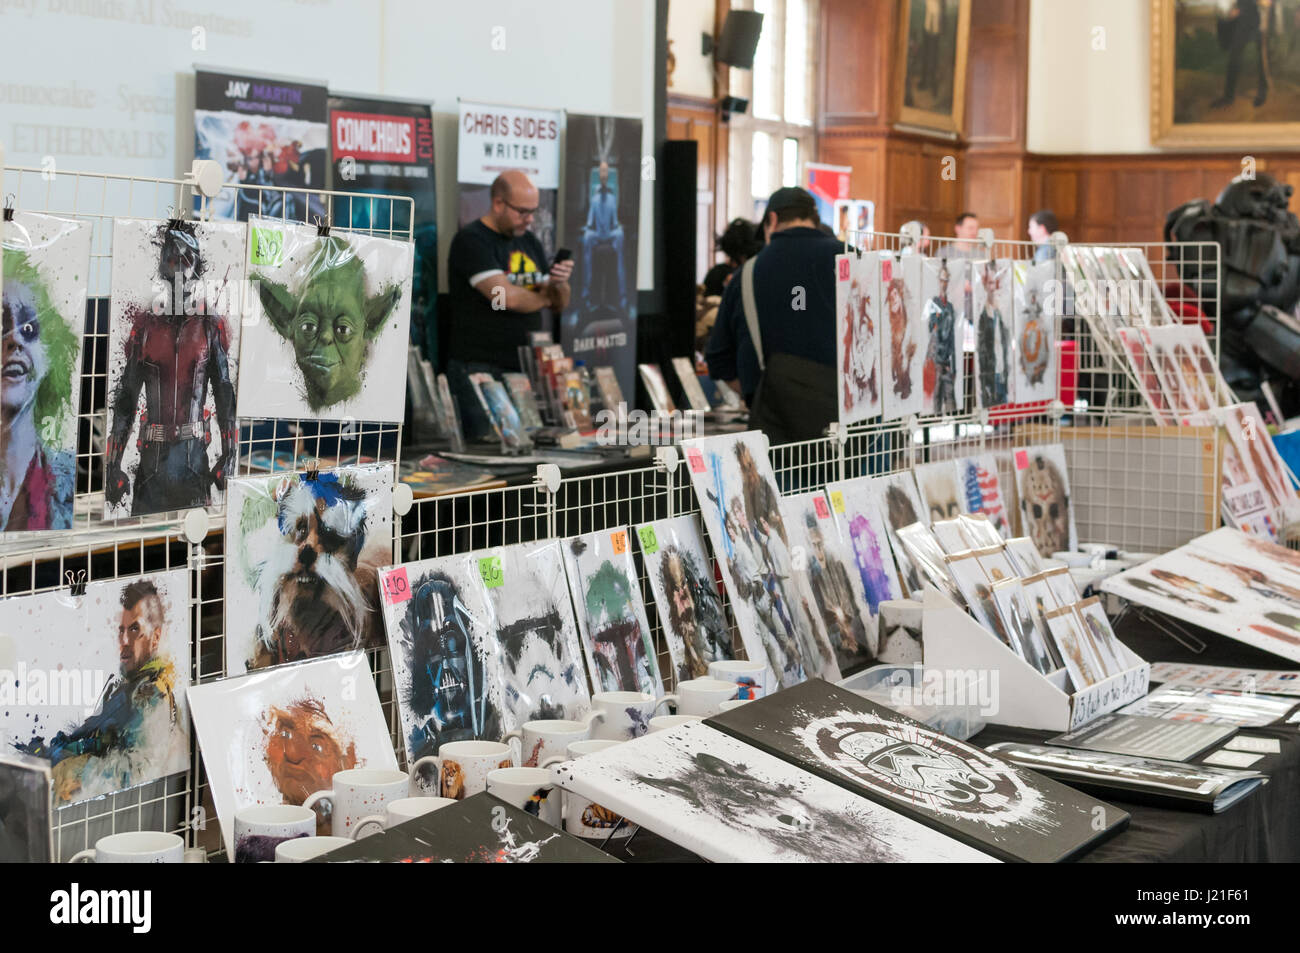 Oxford, Oxfordshire, UK. 23rd April 2017, 2nd OxCon comic con in Oxford. Credit: Stanislav Halcin/Alamy Live News Stock Photo